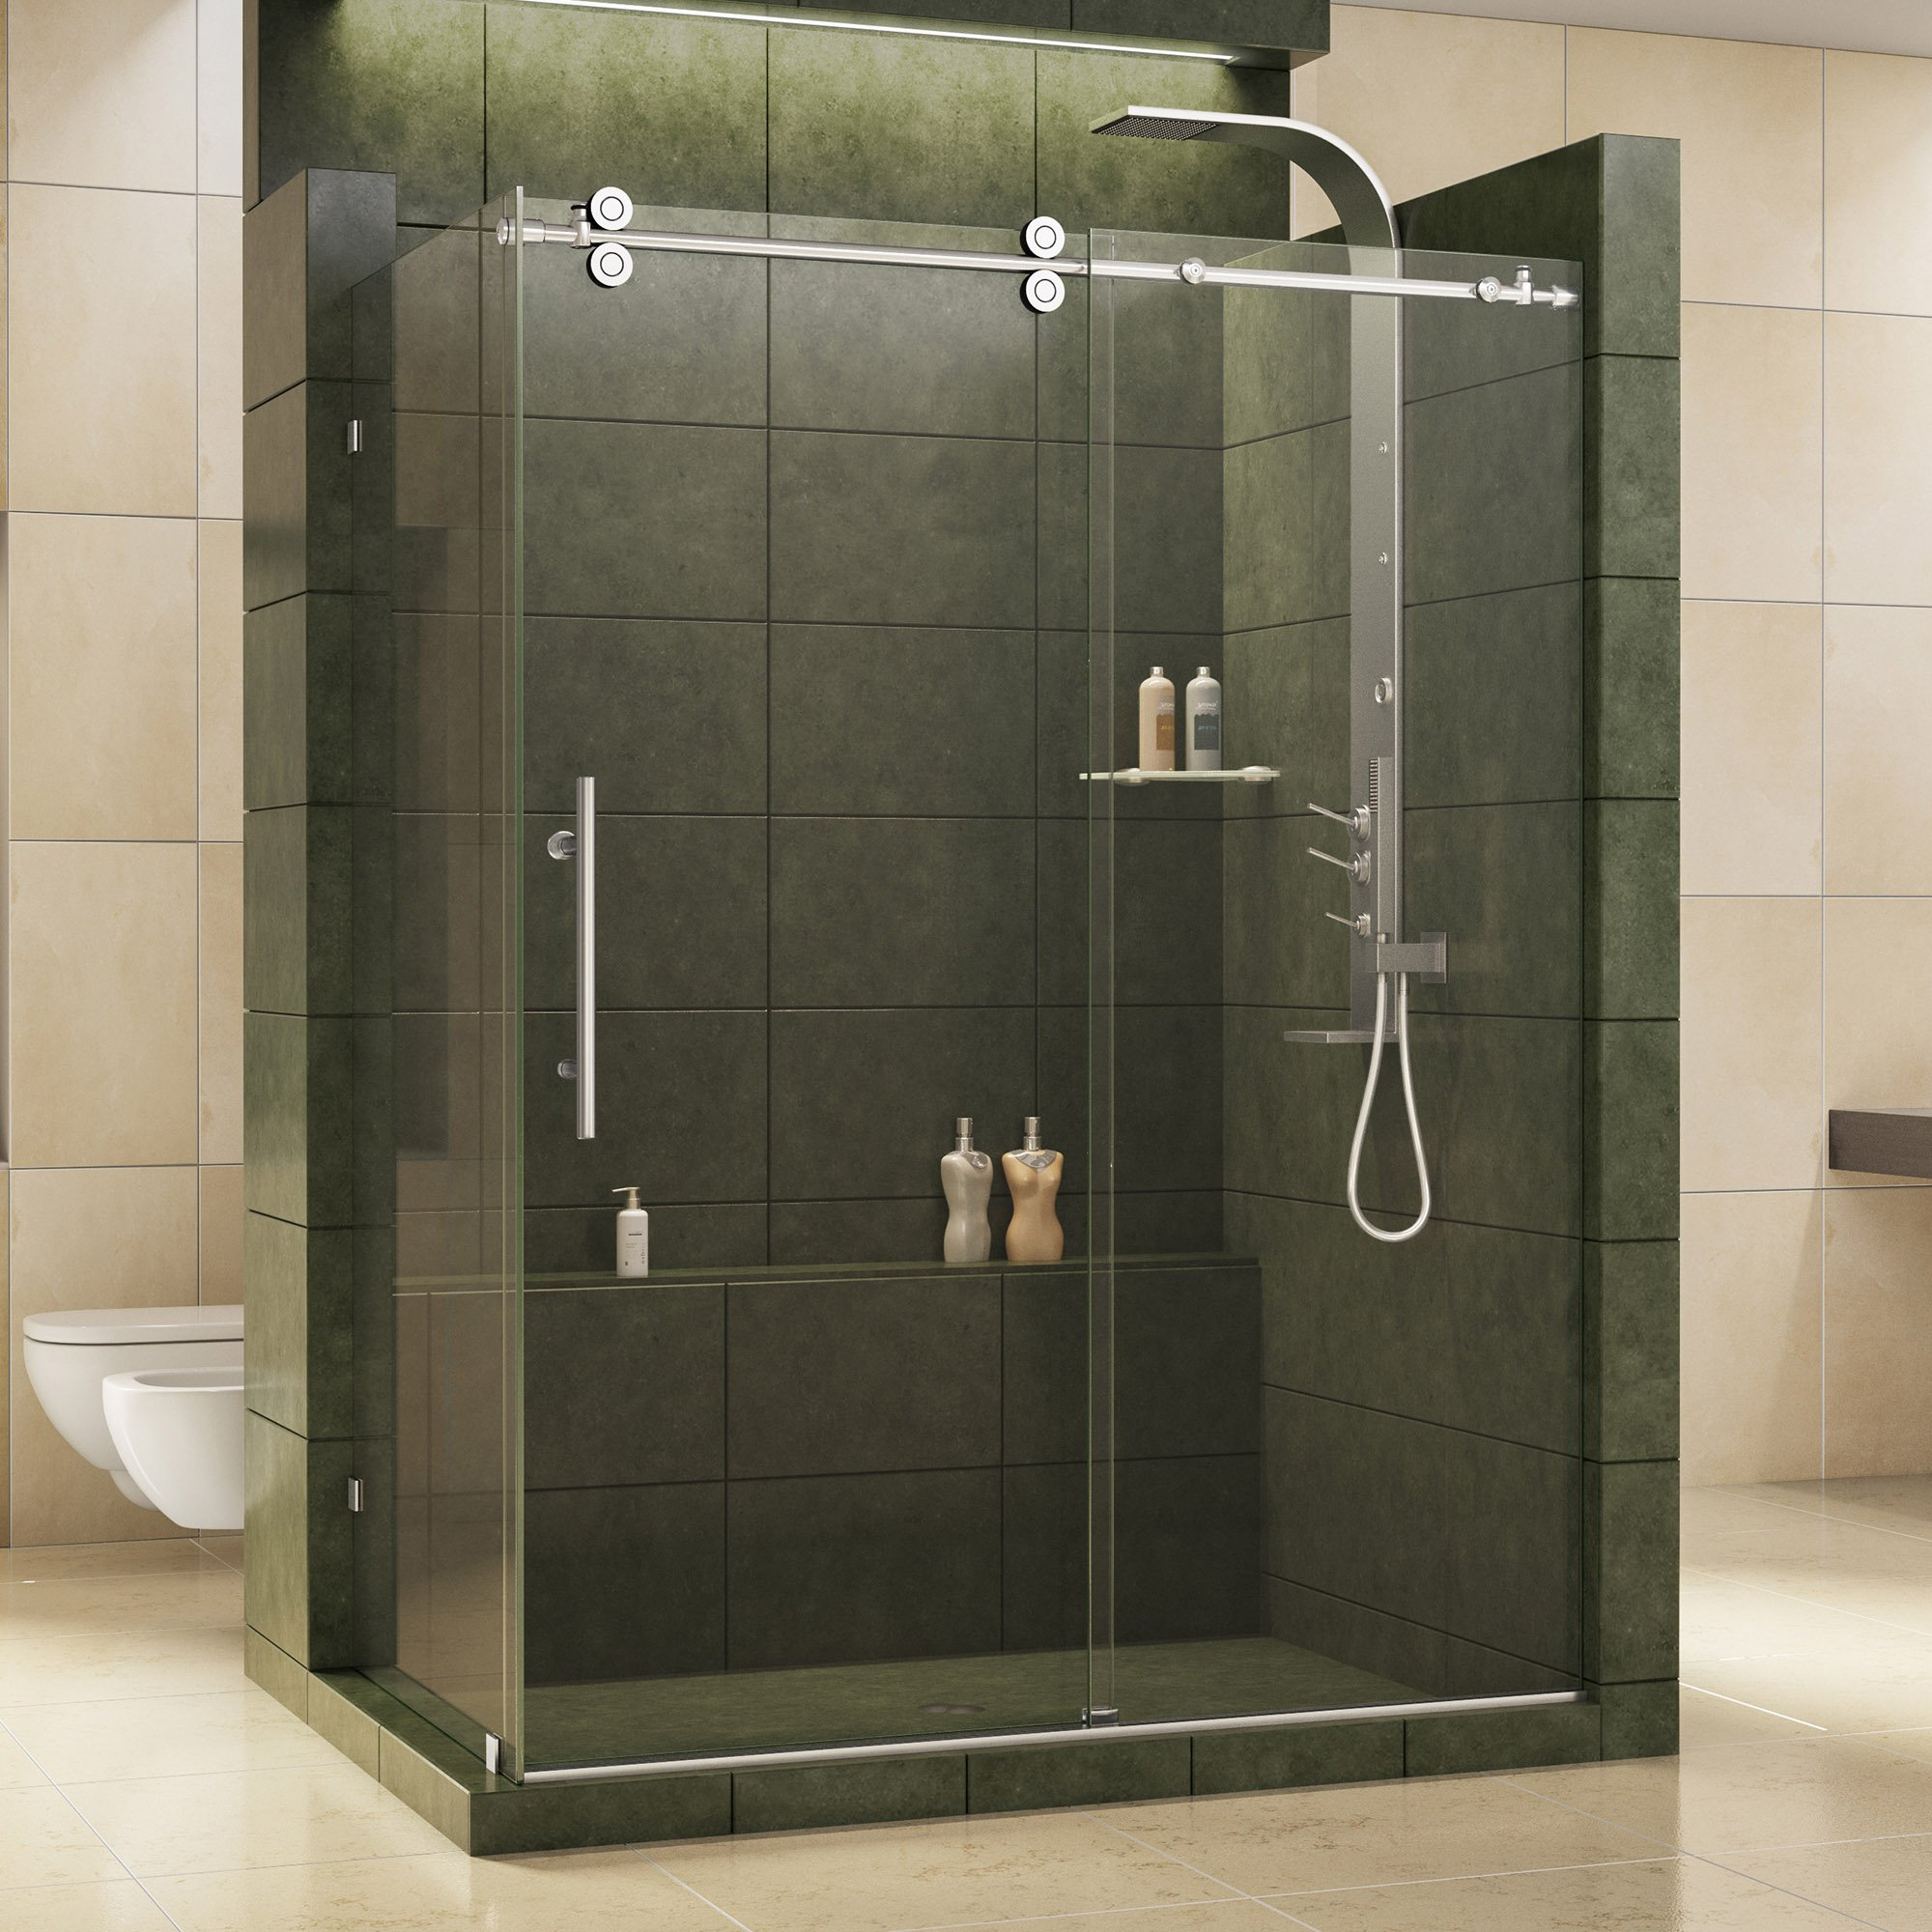 DreamLine Enigma 36 in. D x 56 1/2-60 1/2 in. W, Frameless Sliding Shower Enclosure, 1/2'' Glass, Polished Stainless Steel Finish